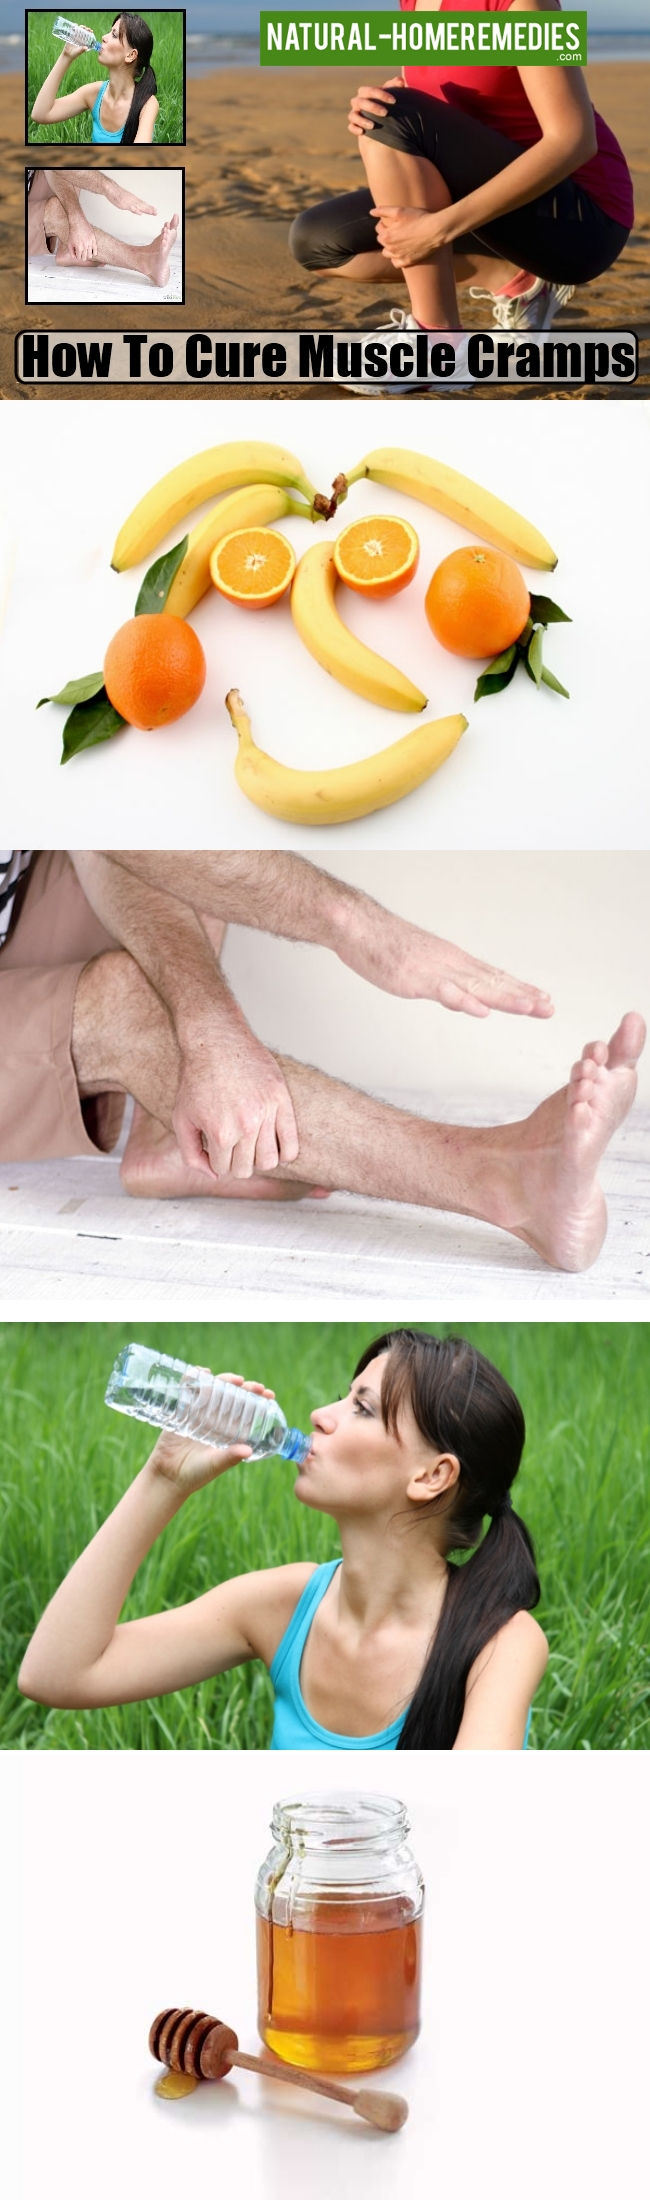 How To Cure Muscle Cramps